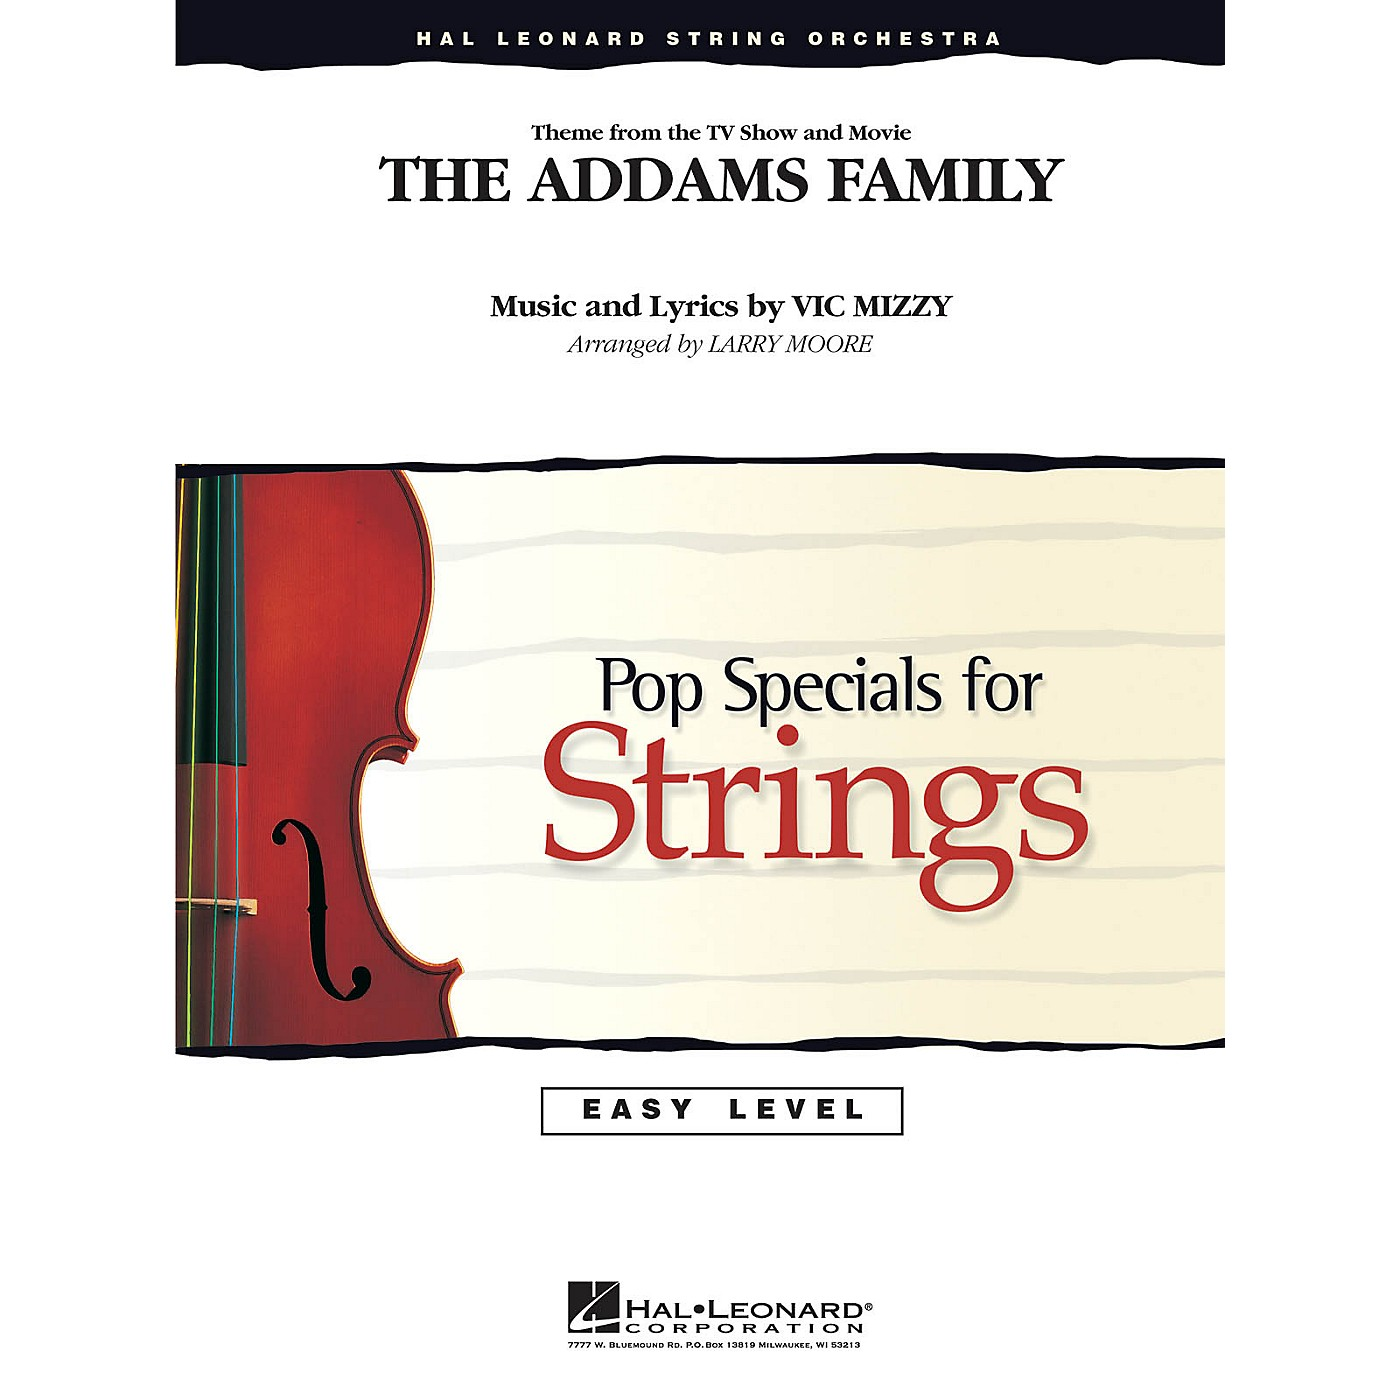 Hal Leonard The Addams Family Easy Pop Specials For Strings Series Arranged by Larry Moore thumbnail